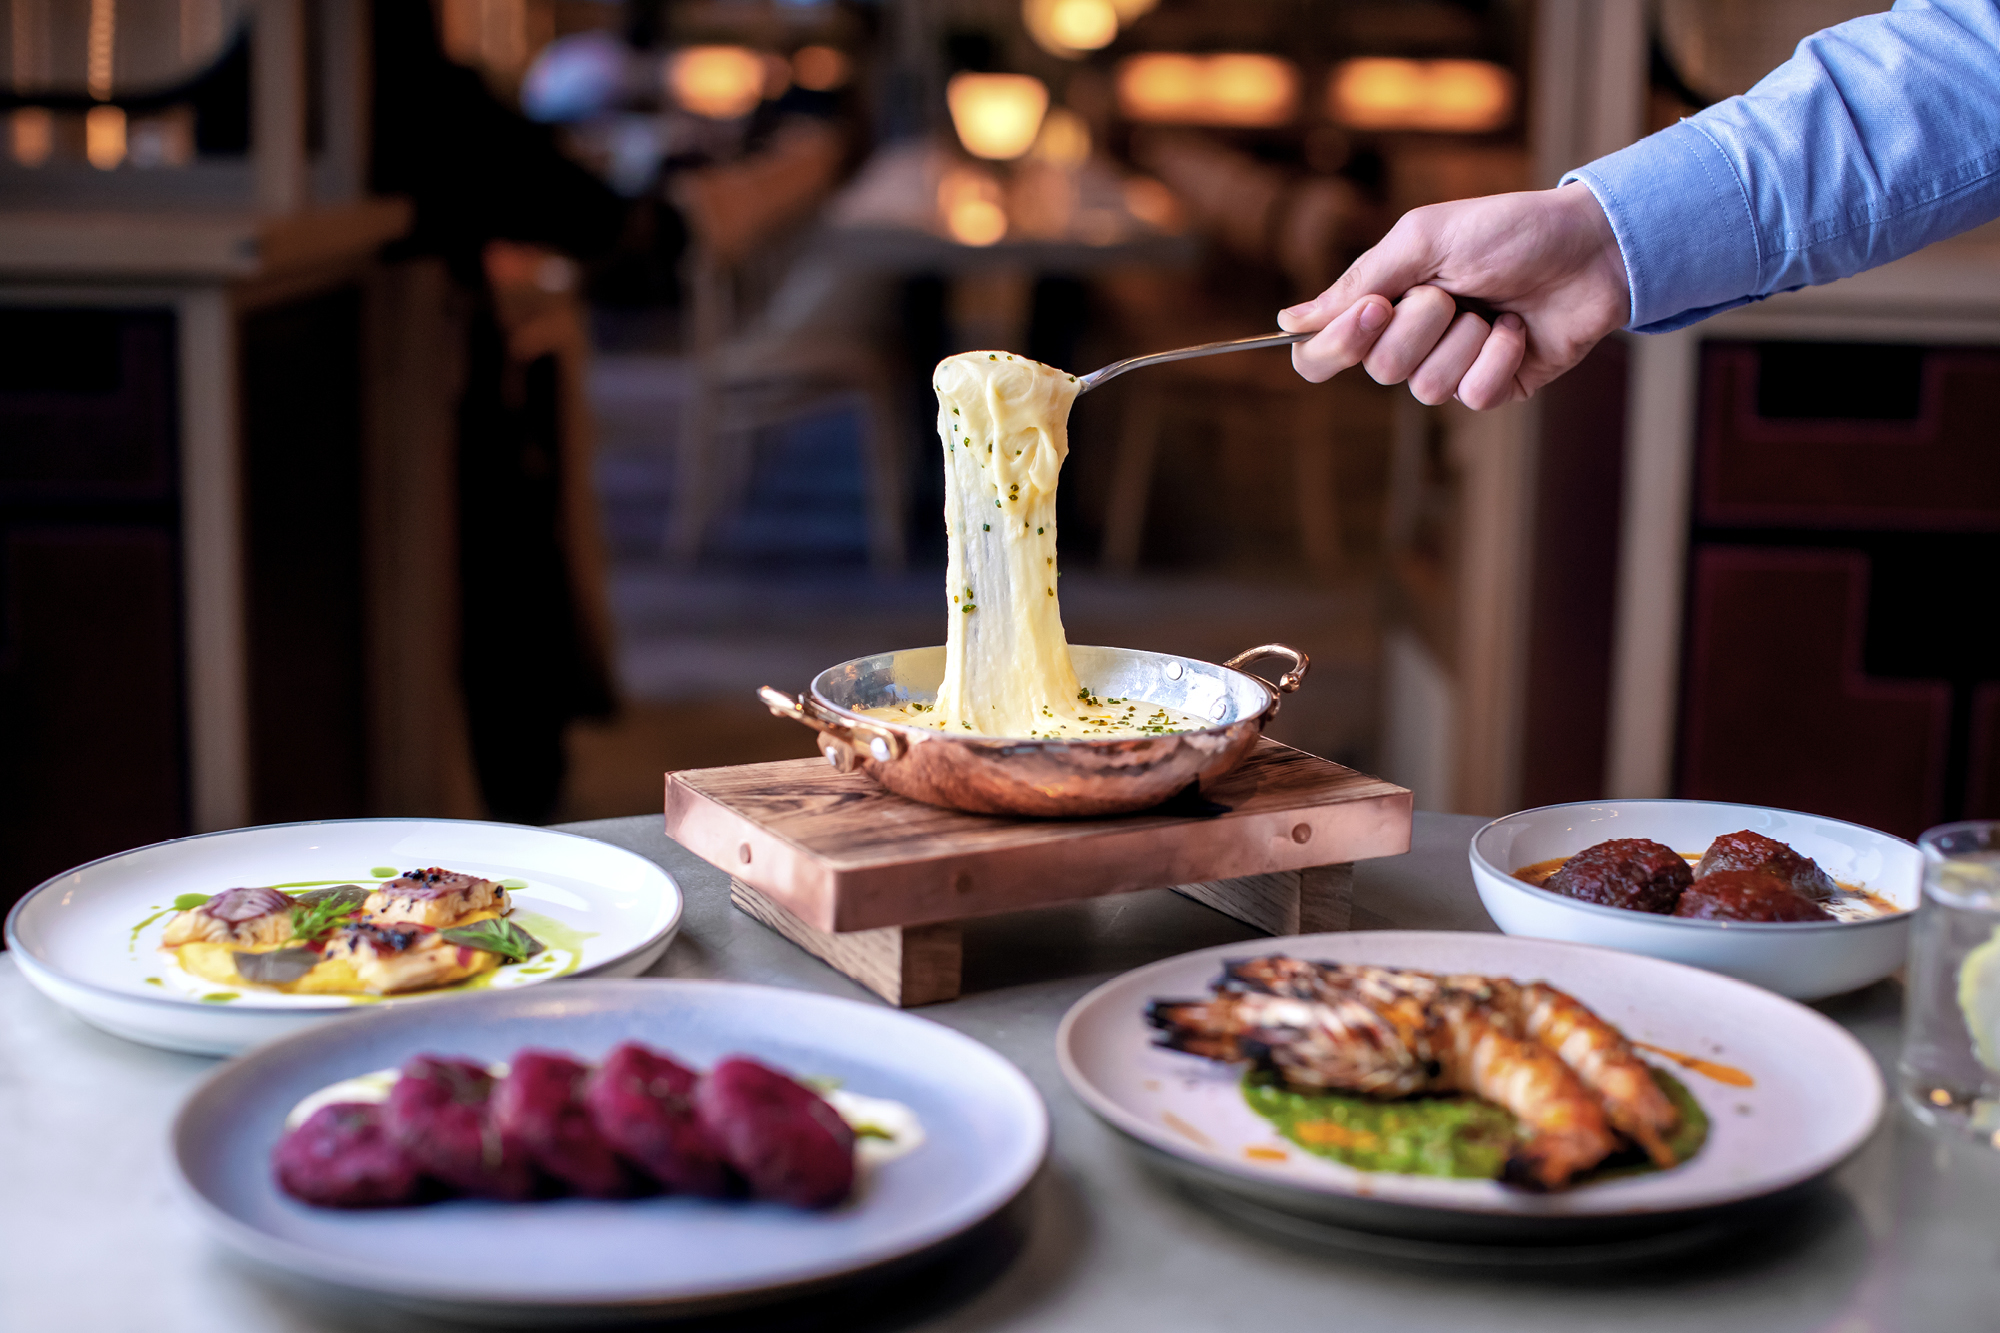 The menu at Barboun is full of nibbles, small plates, big plates and sides; perfect for sharing.